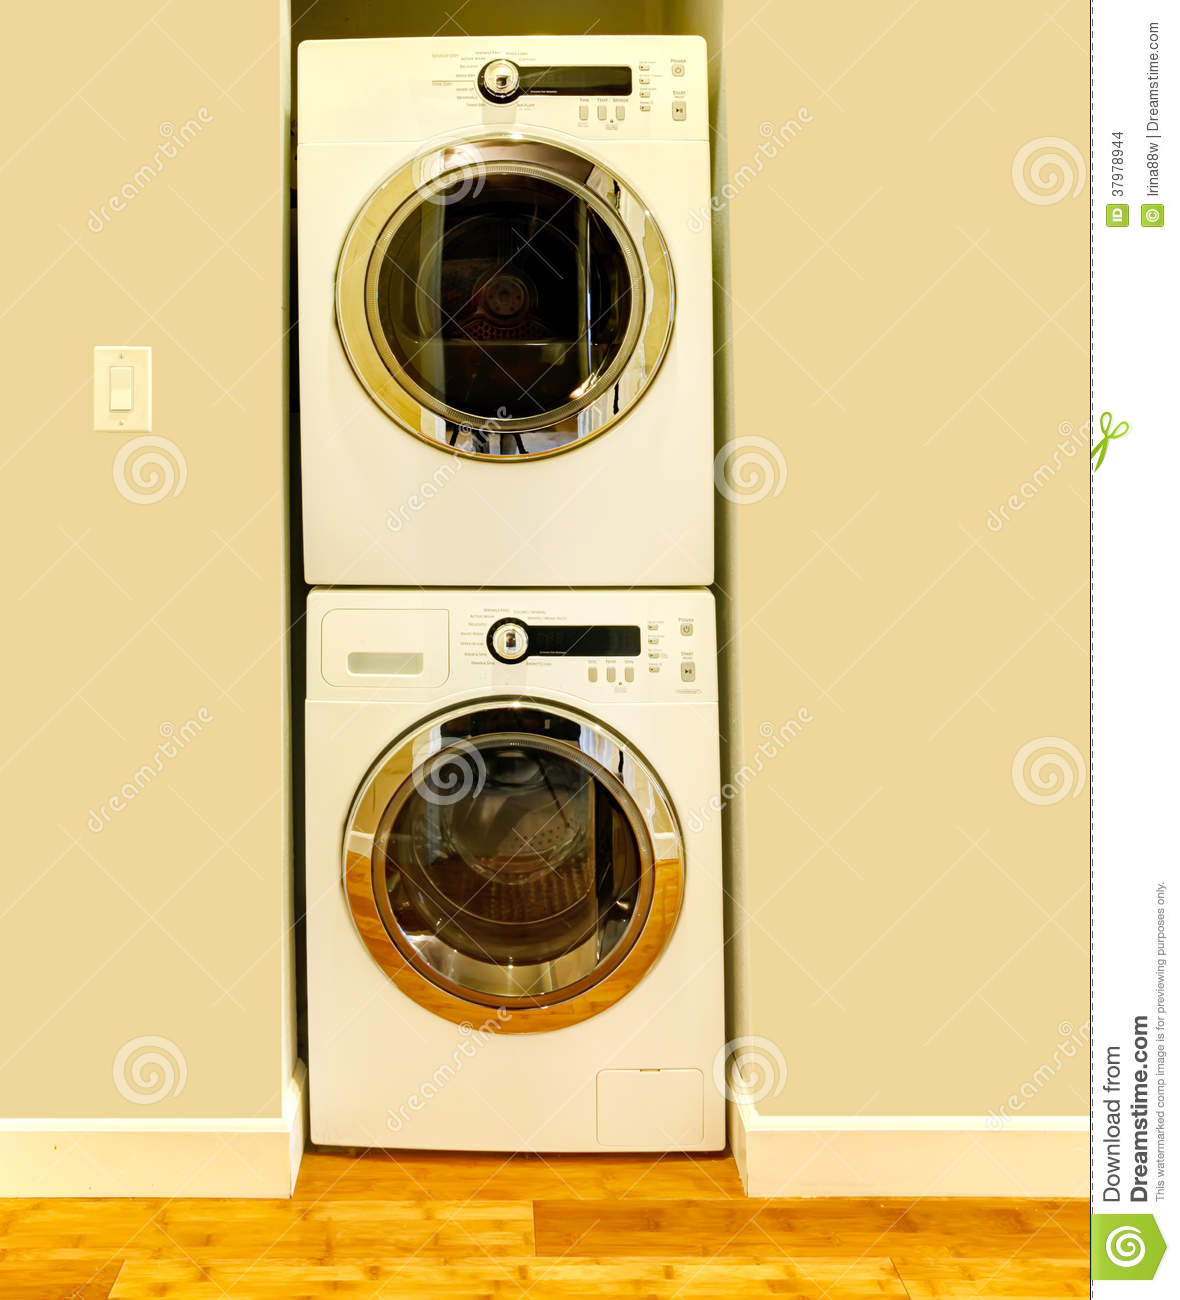 Niche for washer and dryer stock images image 37978944